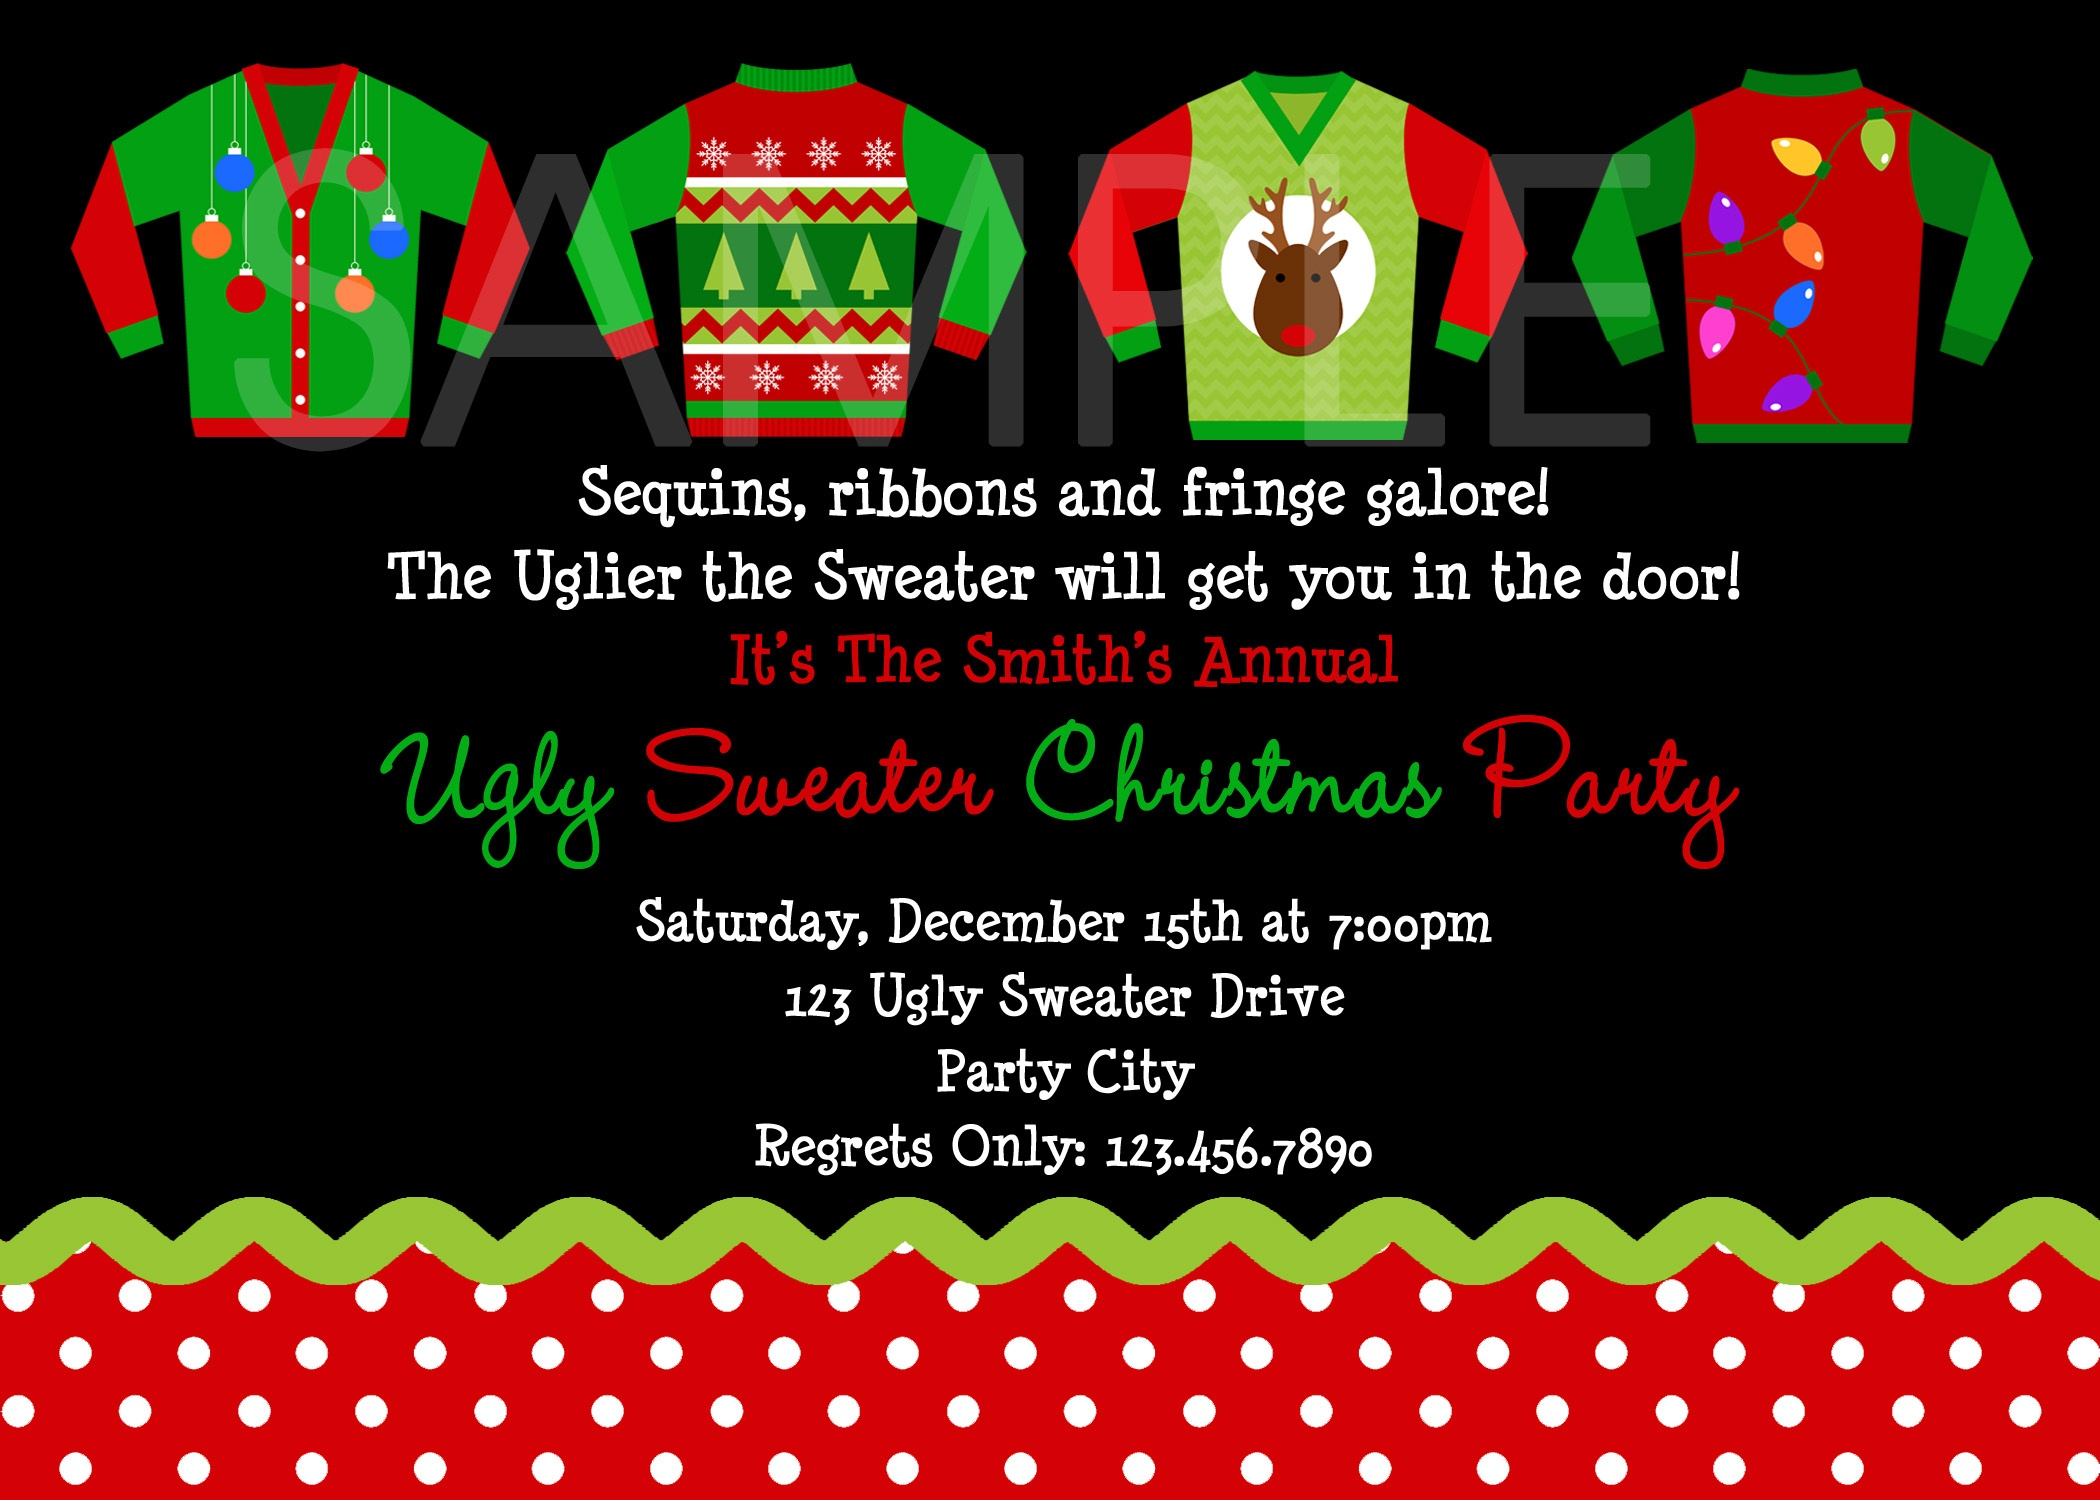 Best Of Ugly Sweater Party Invite For Idea Ugly Sweater Party - Free Printable Personalized Christmas Invitations